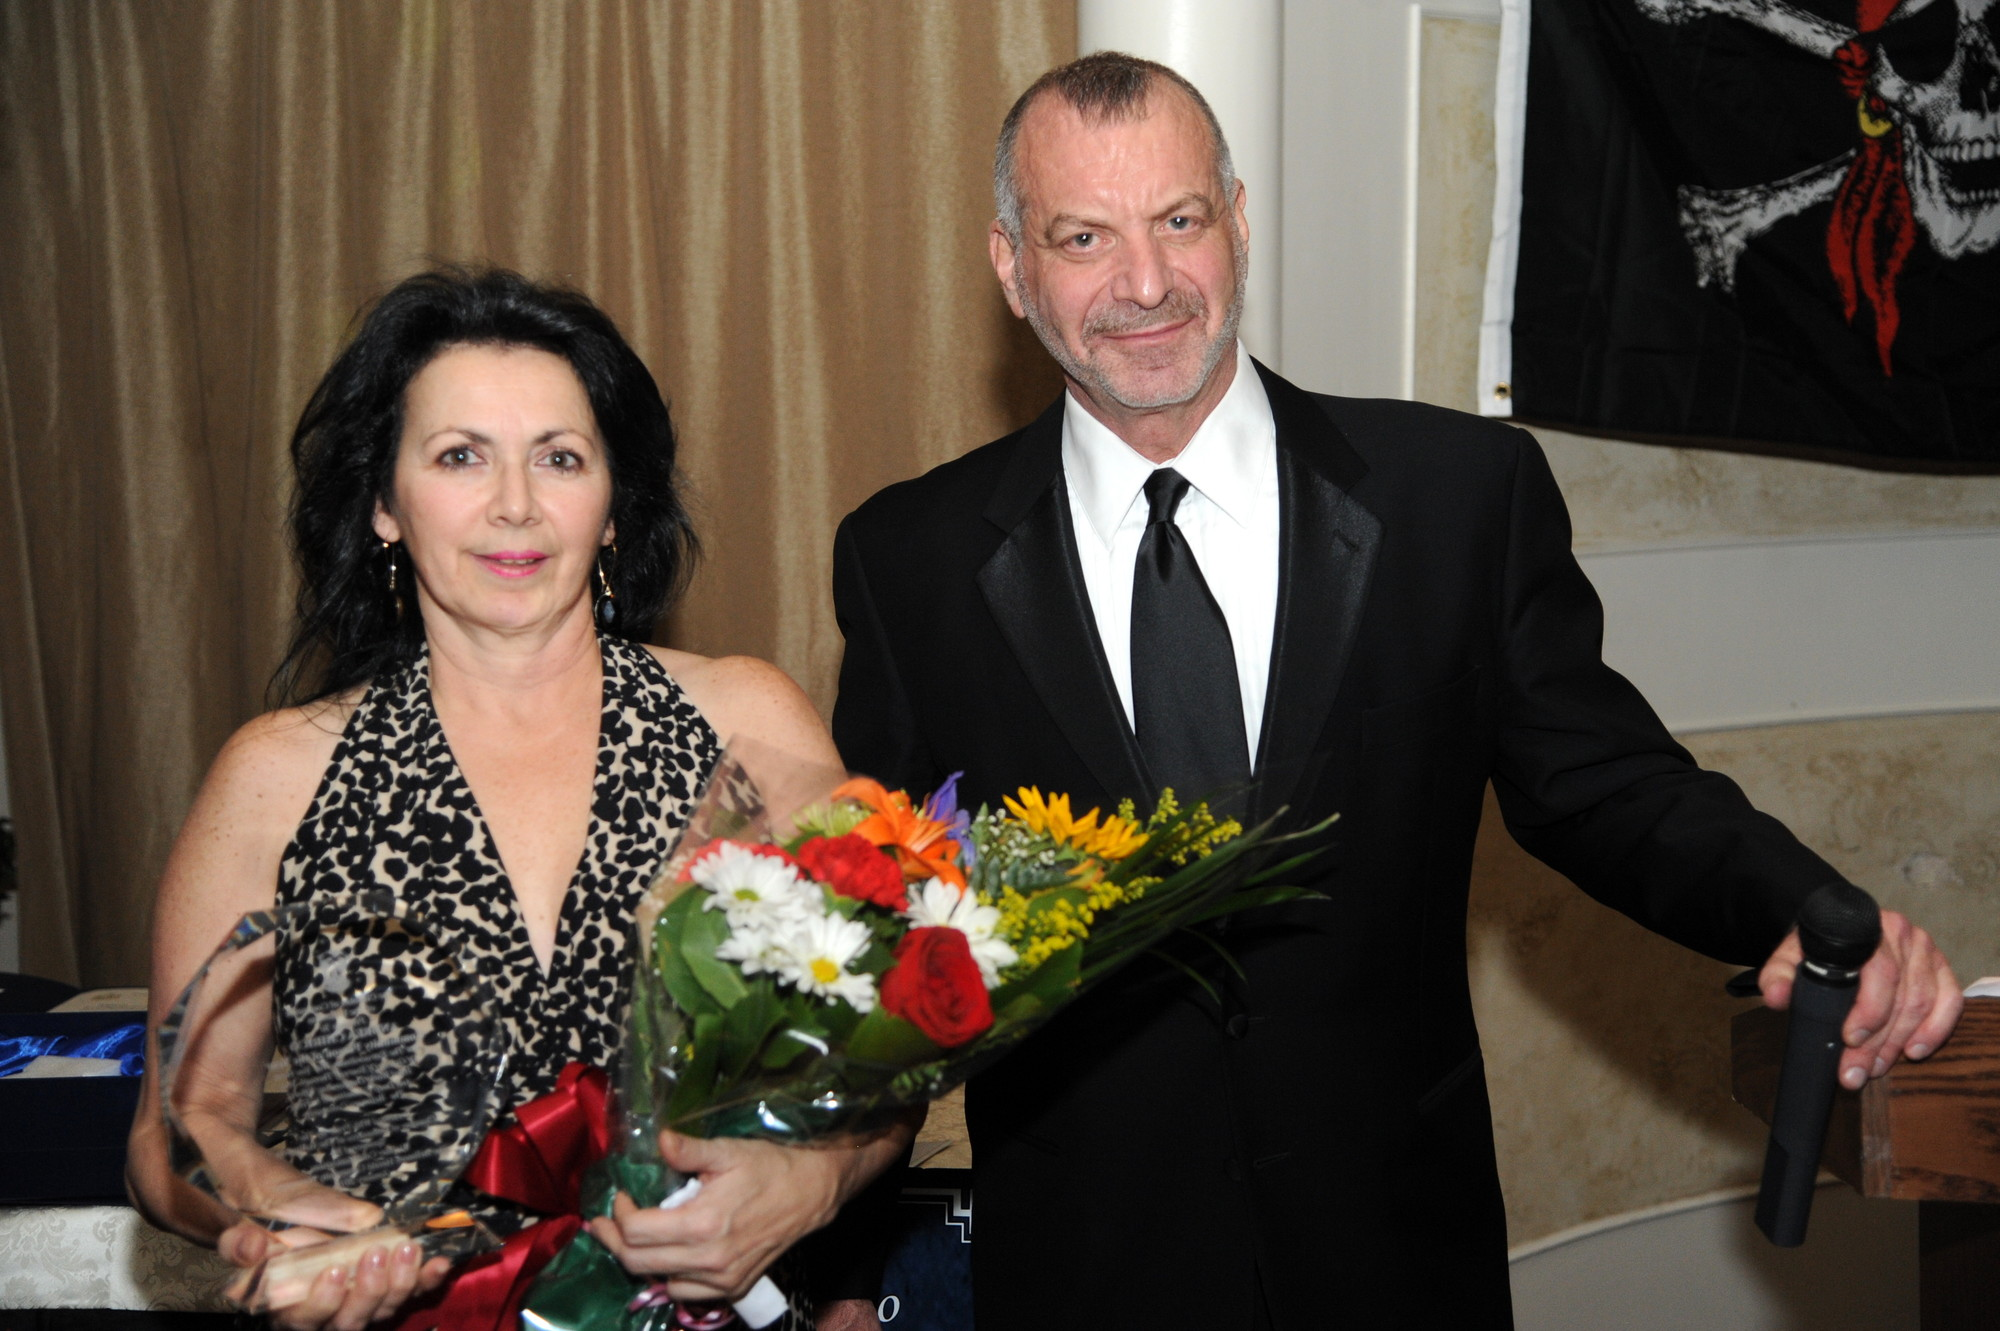 Richner congratulated Andrea Chirico on being named the Community Person of the Year.